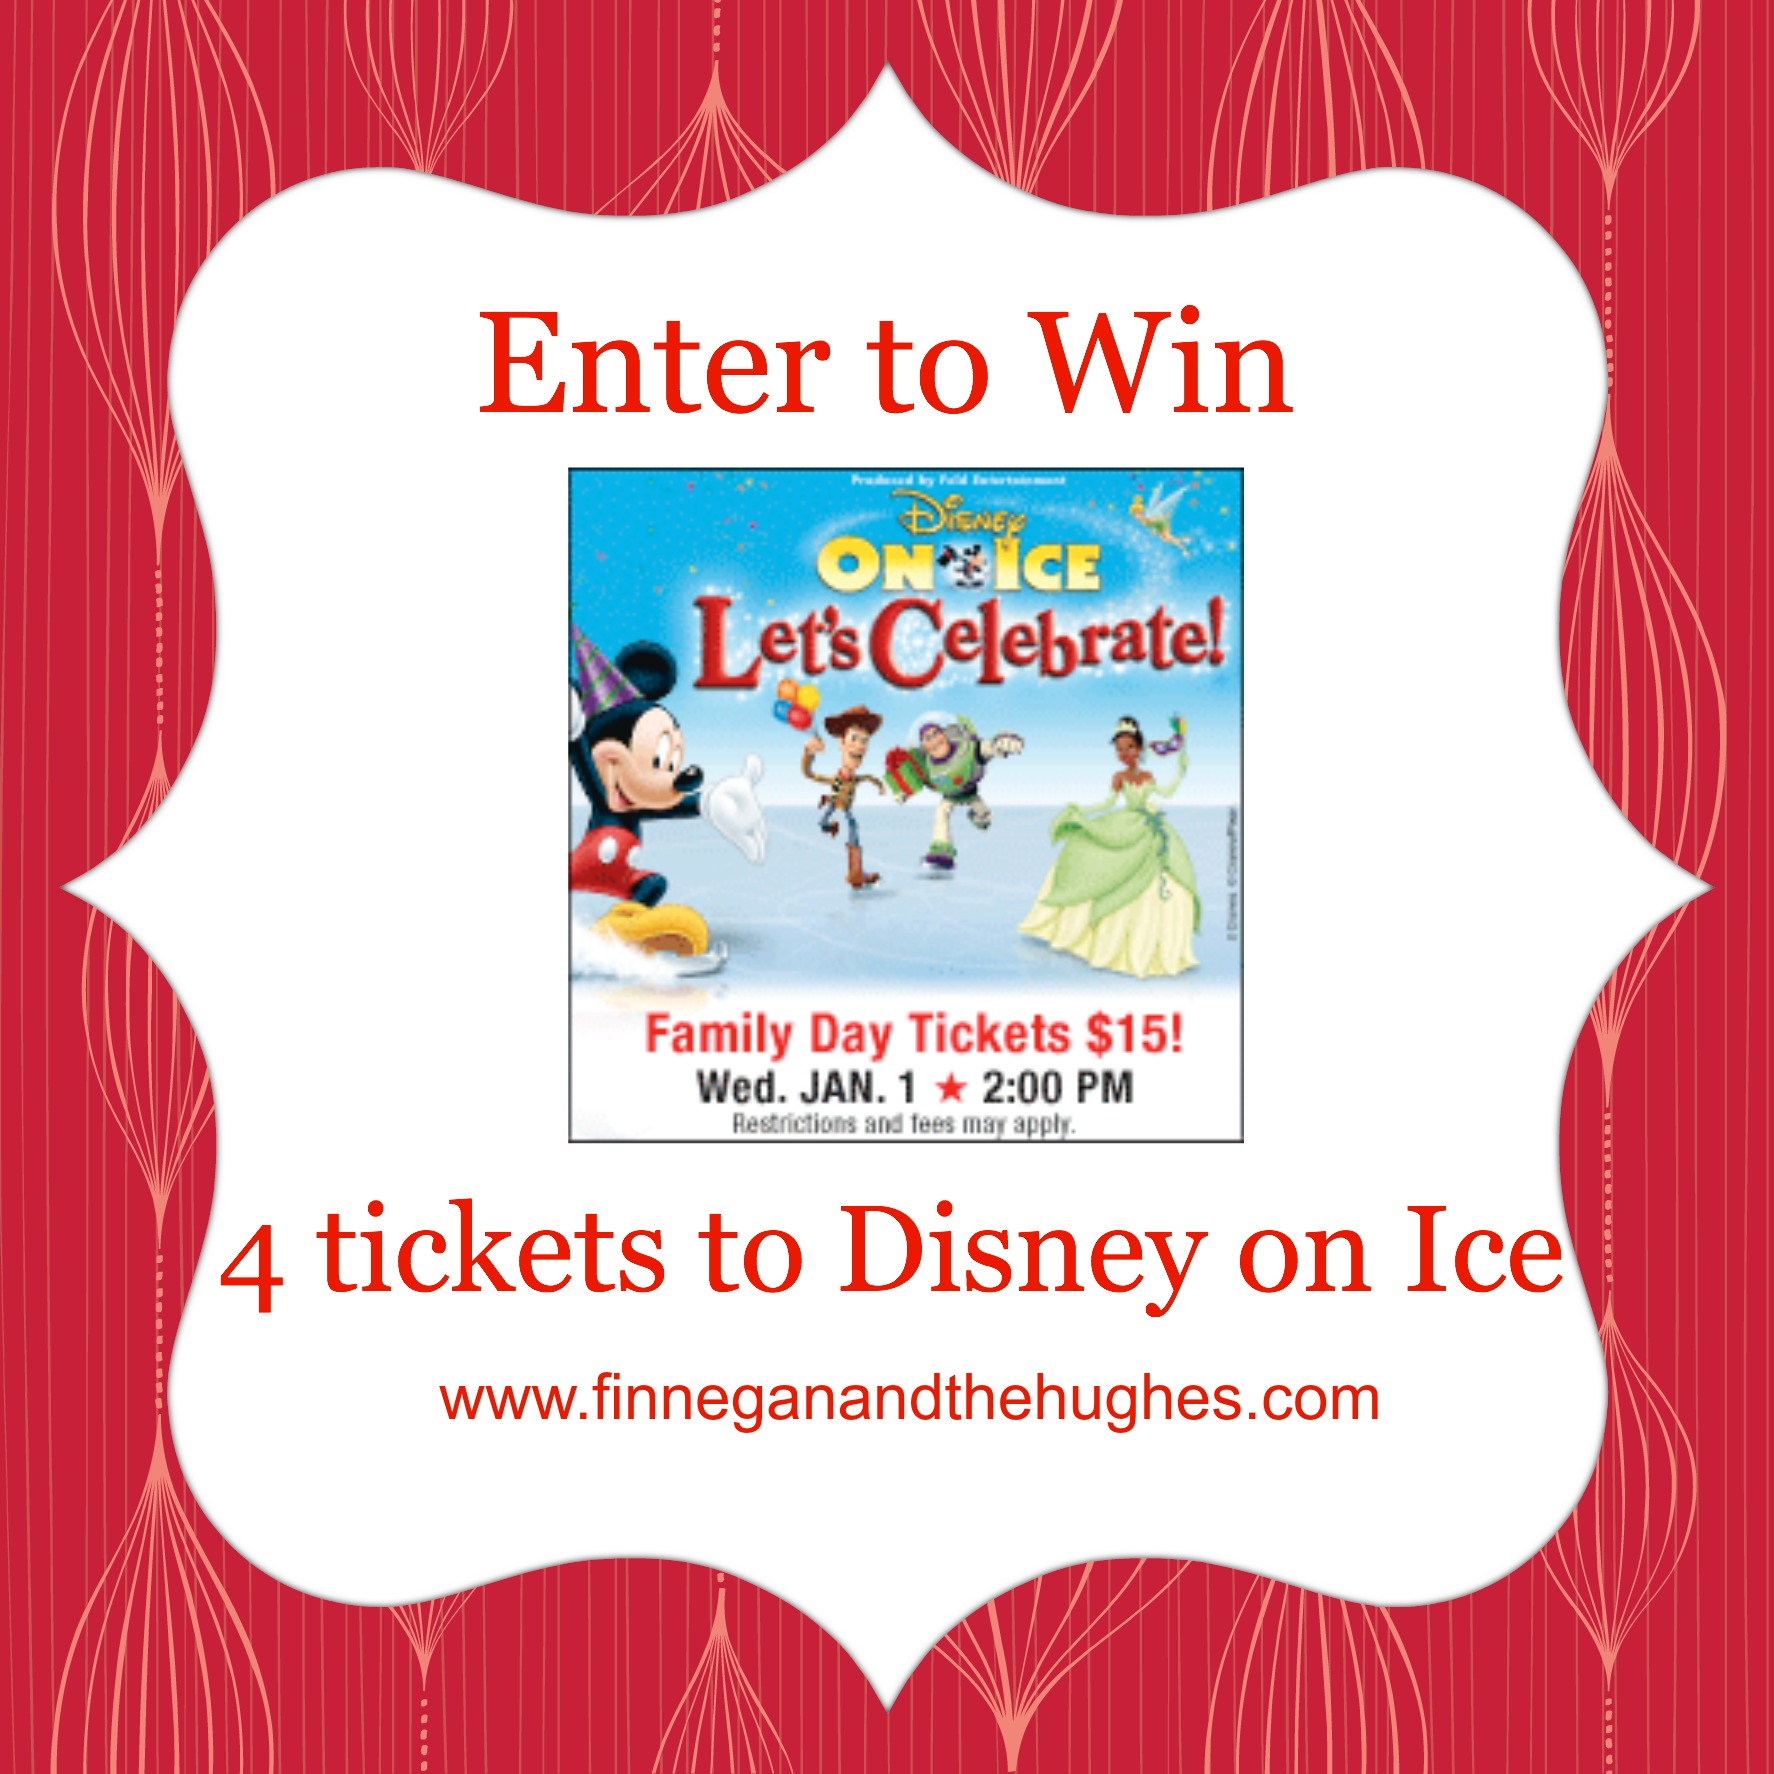 Disney on Ice Discount Code and 4 ticket GIVEAWAY